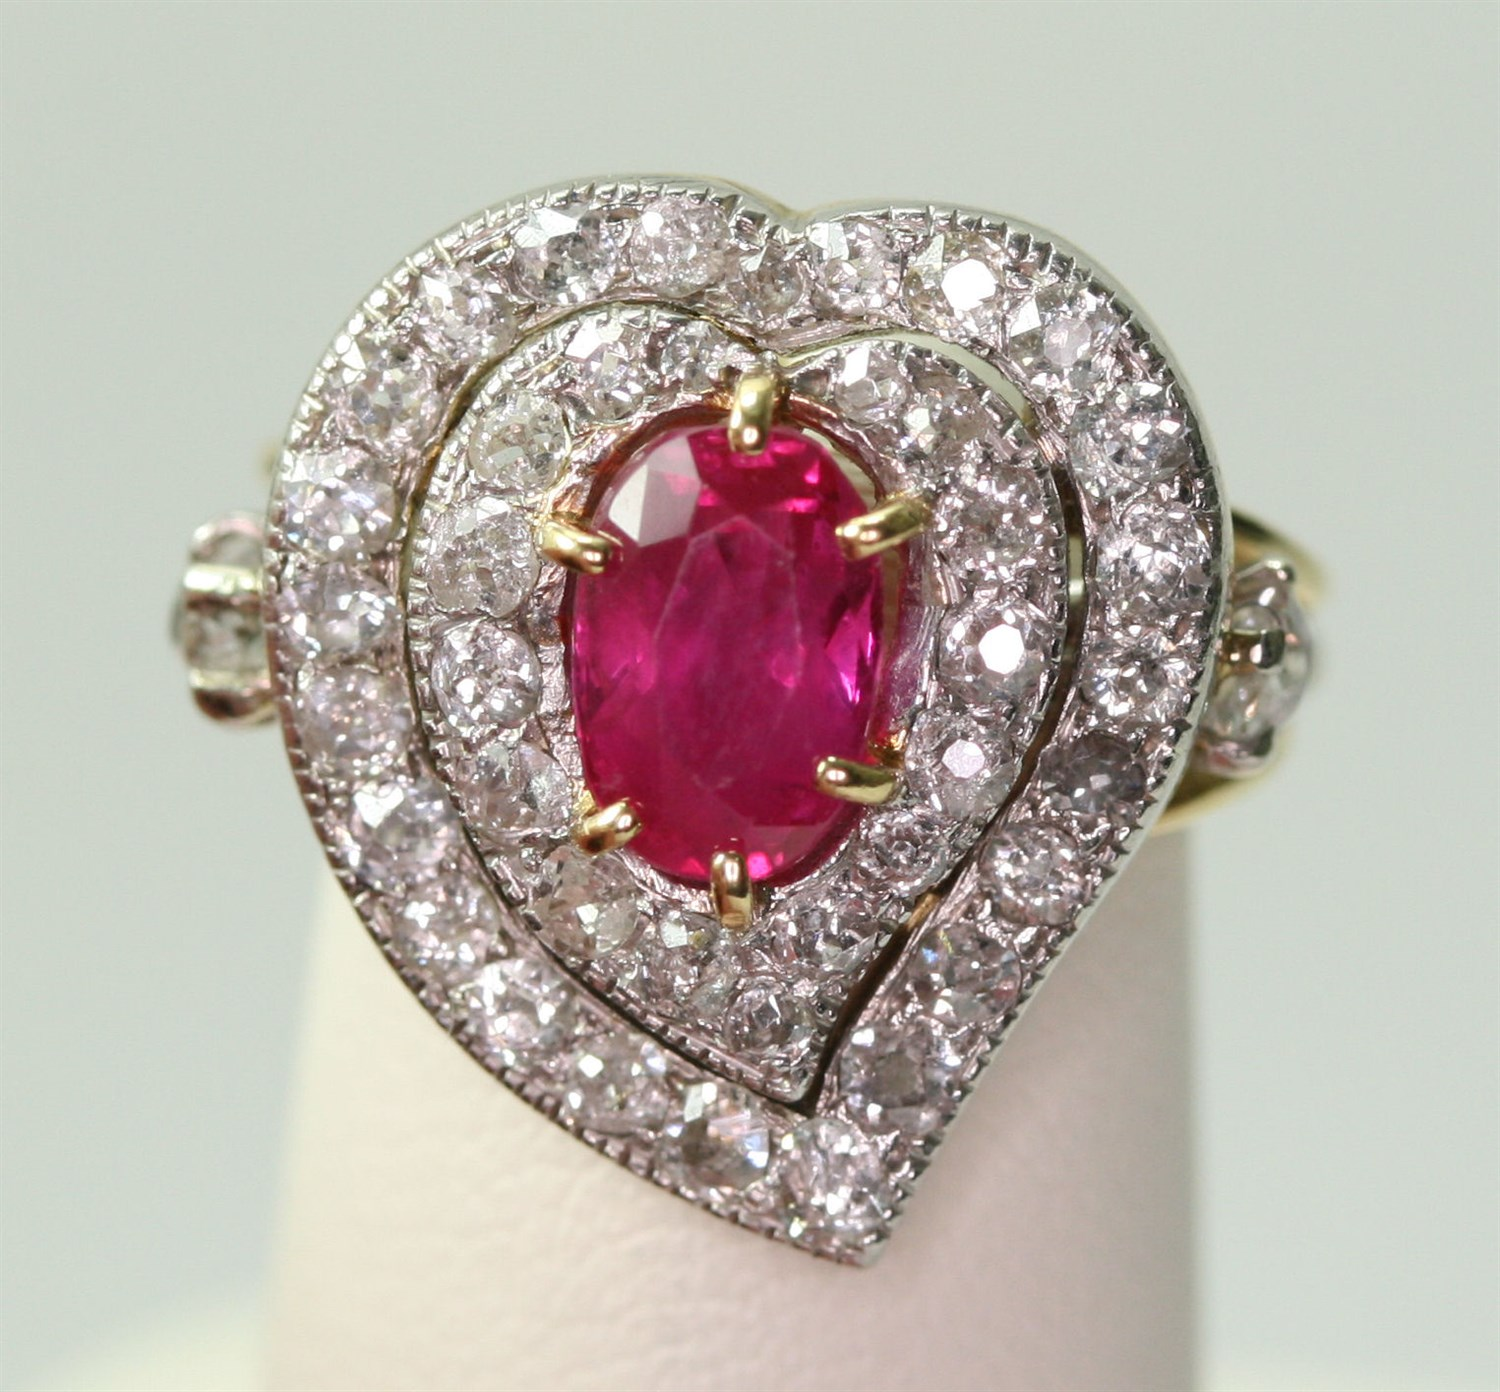 Lot 108 - A Belle Epoque ruby and diamond cluster ring